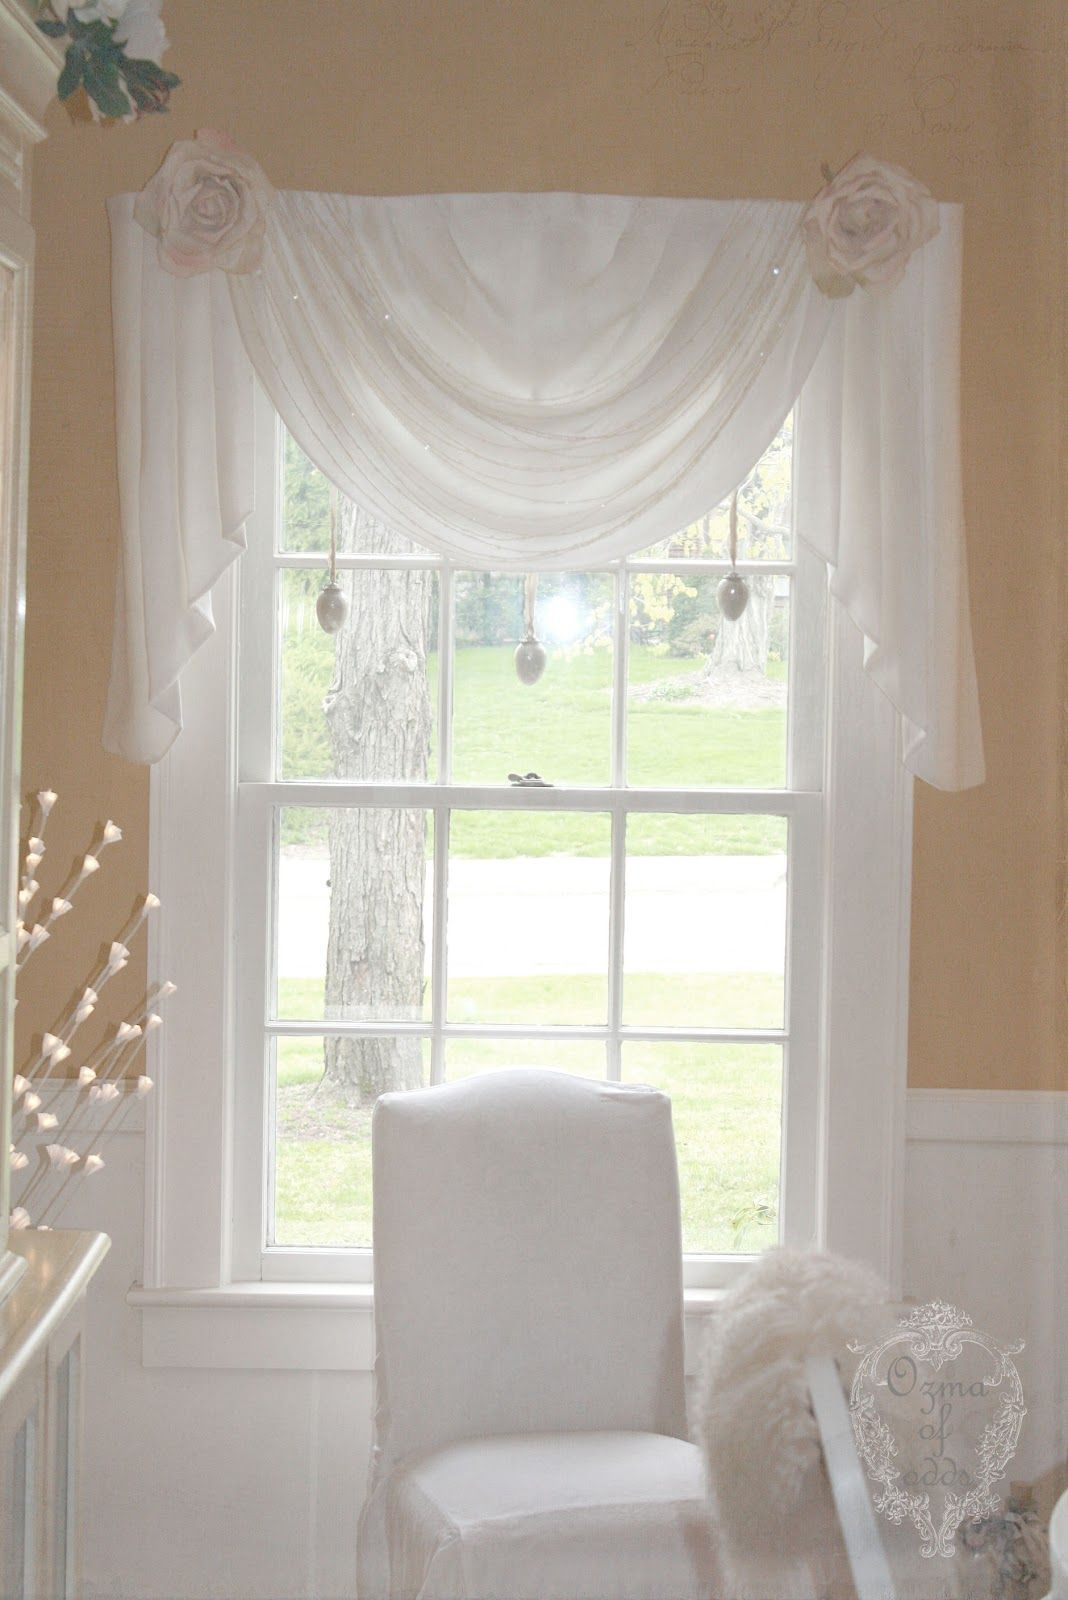 Window covering ideas   window treatment ideas and curtain designs photos  window